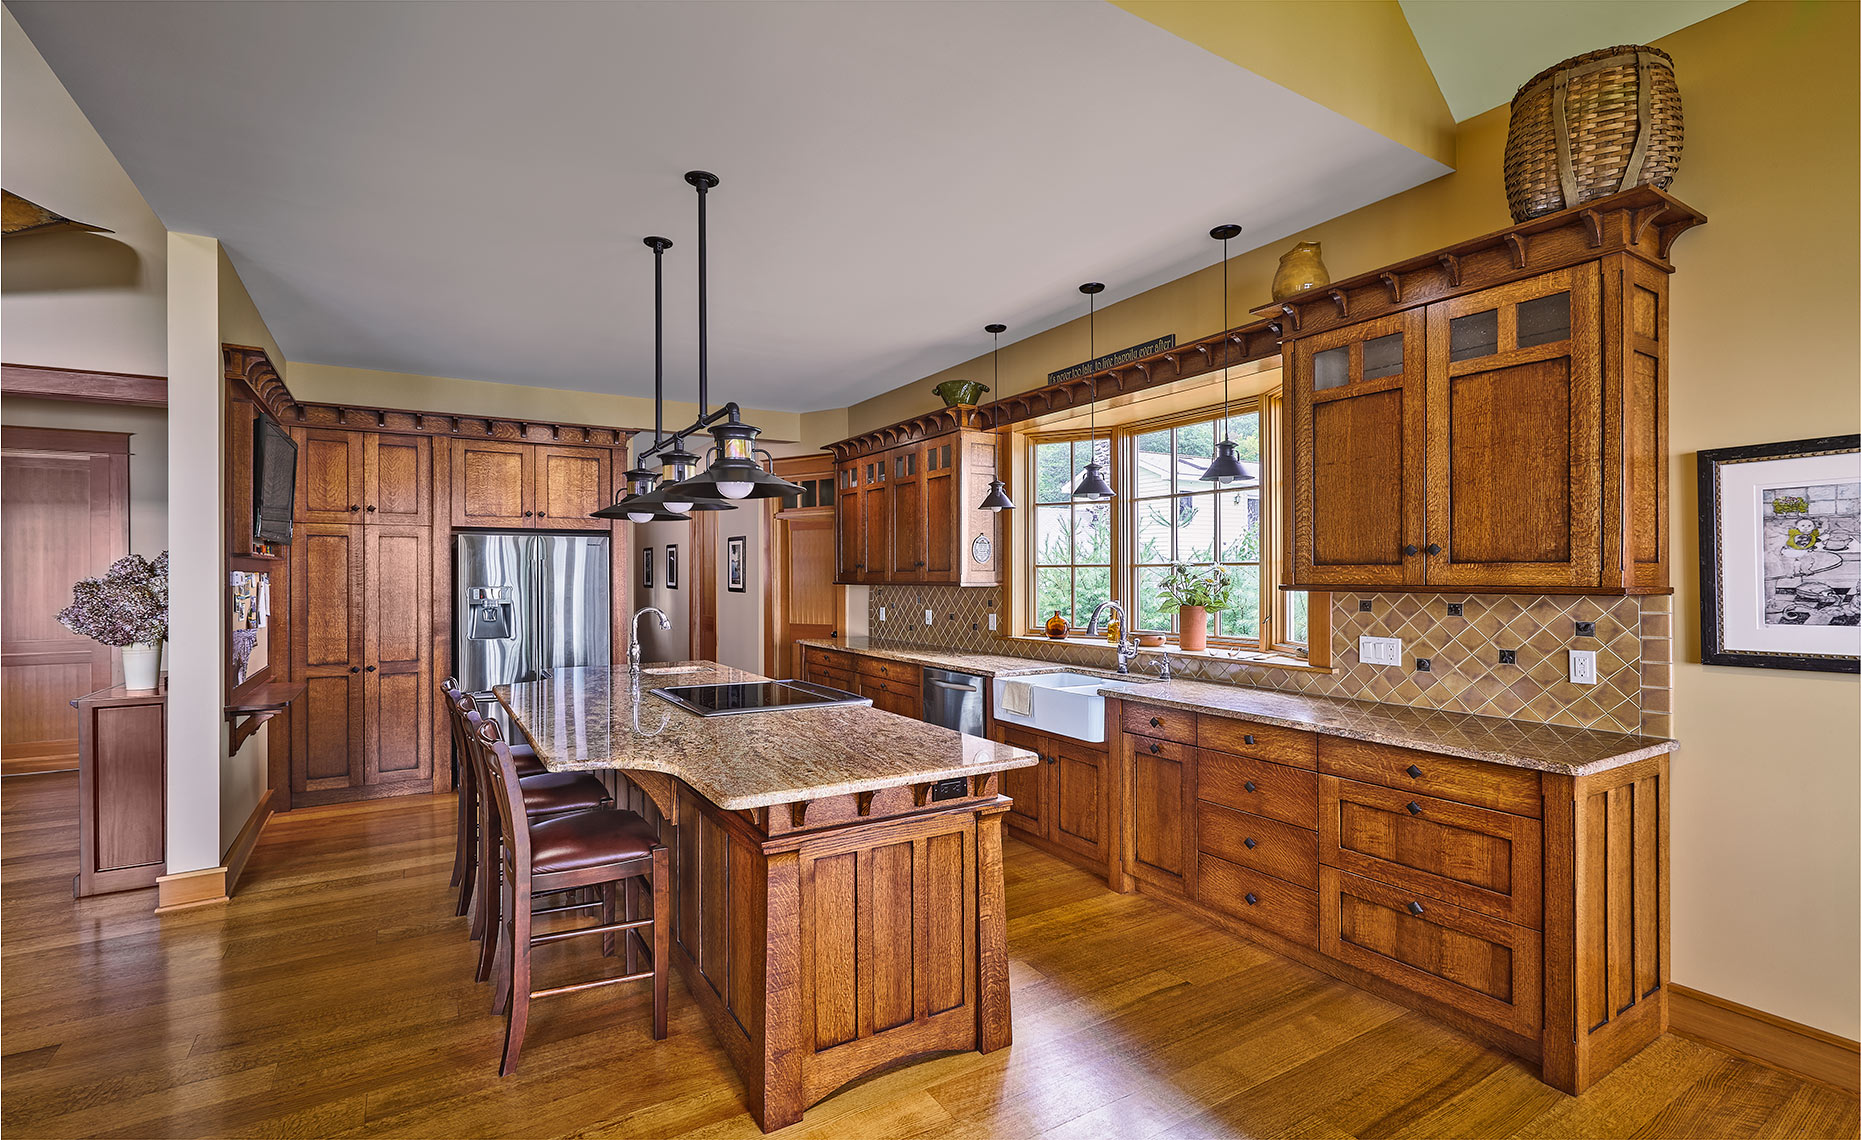 8 13 Custom Mission Style Kitchen Quartered Oak